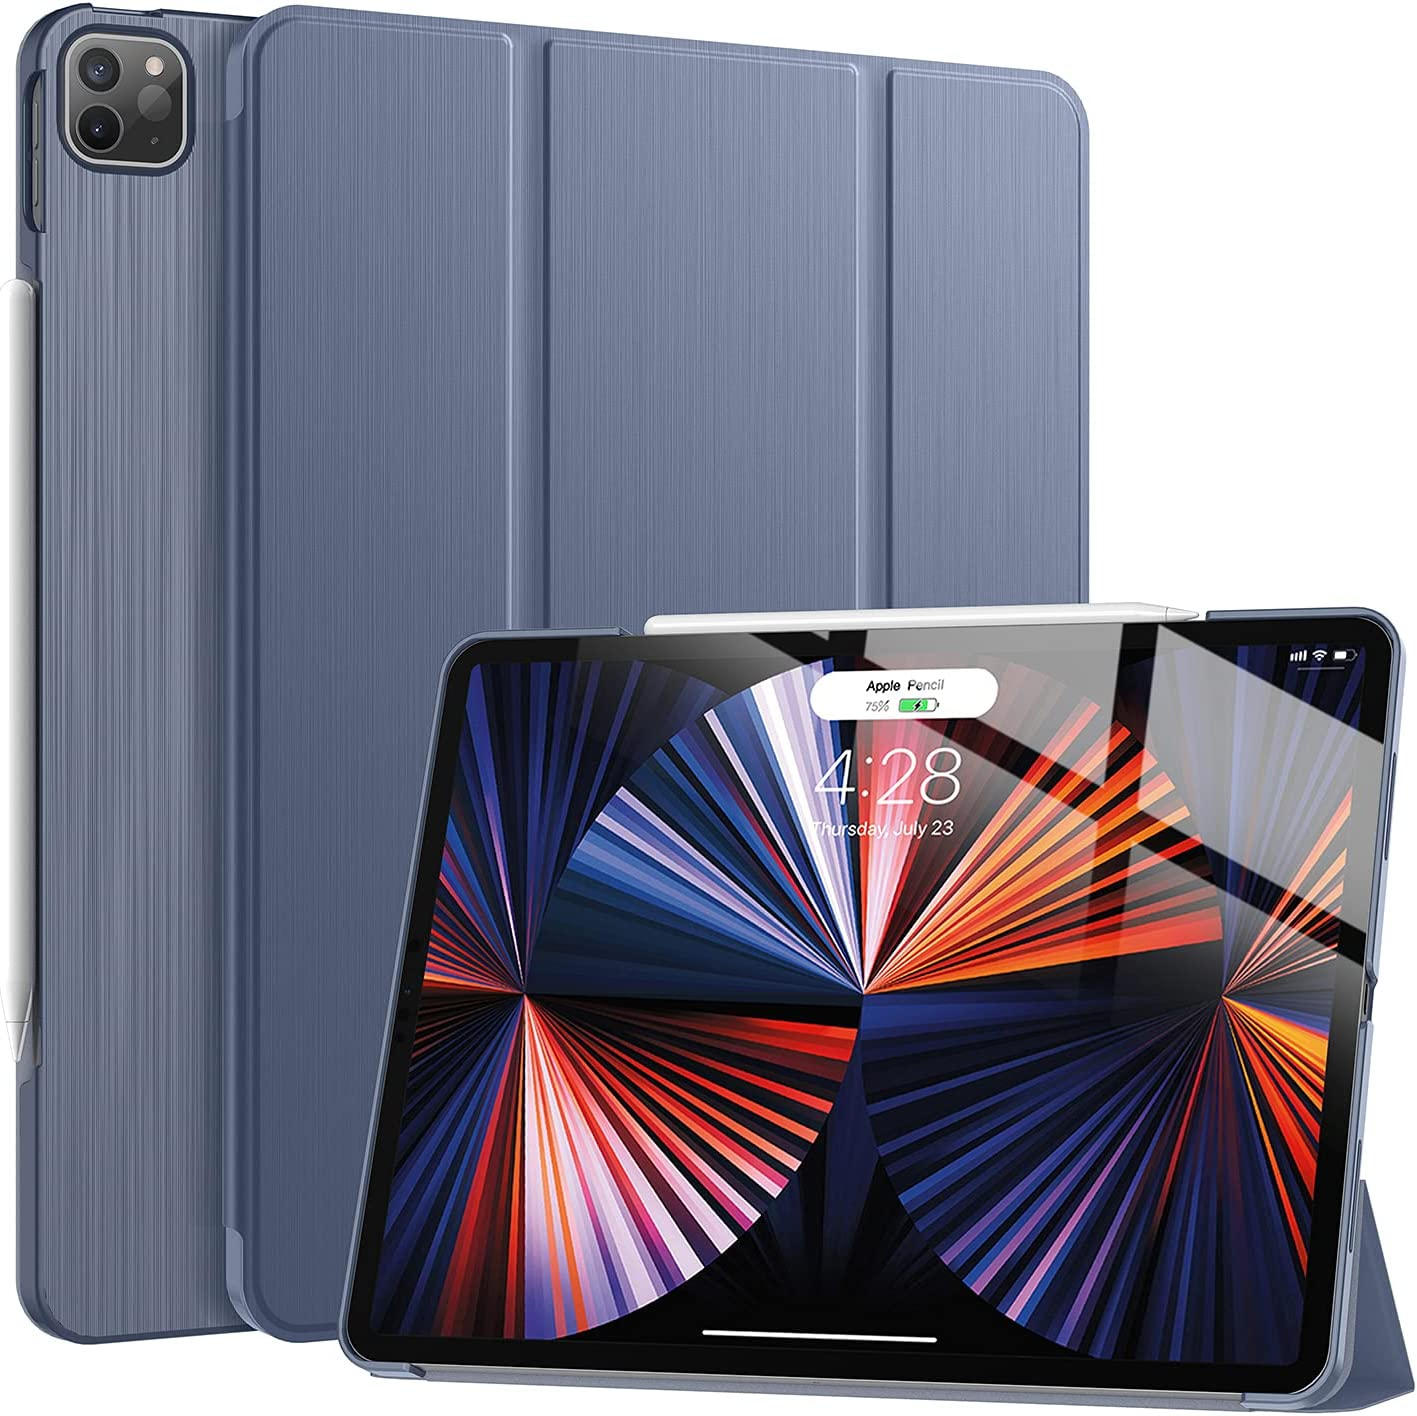 Soke New iPad Pro 12.9 Case 2021(5th Generation) - [Slim Trifold Stand + 2nd Gen Apple Pencil Charging + Smart Auto Wake/Sleep],Premium Protective Hard PC Back Cover for iPad Pro 12.9 inch(Lavender)